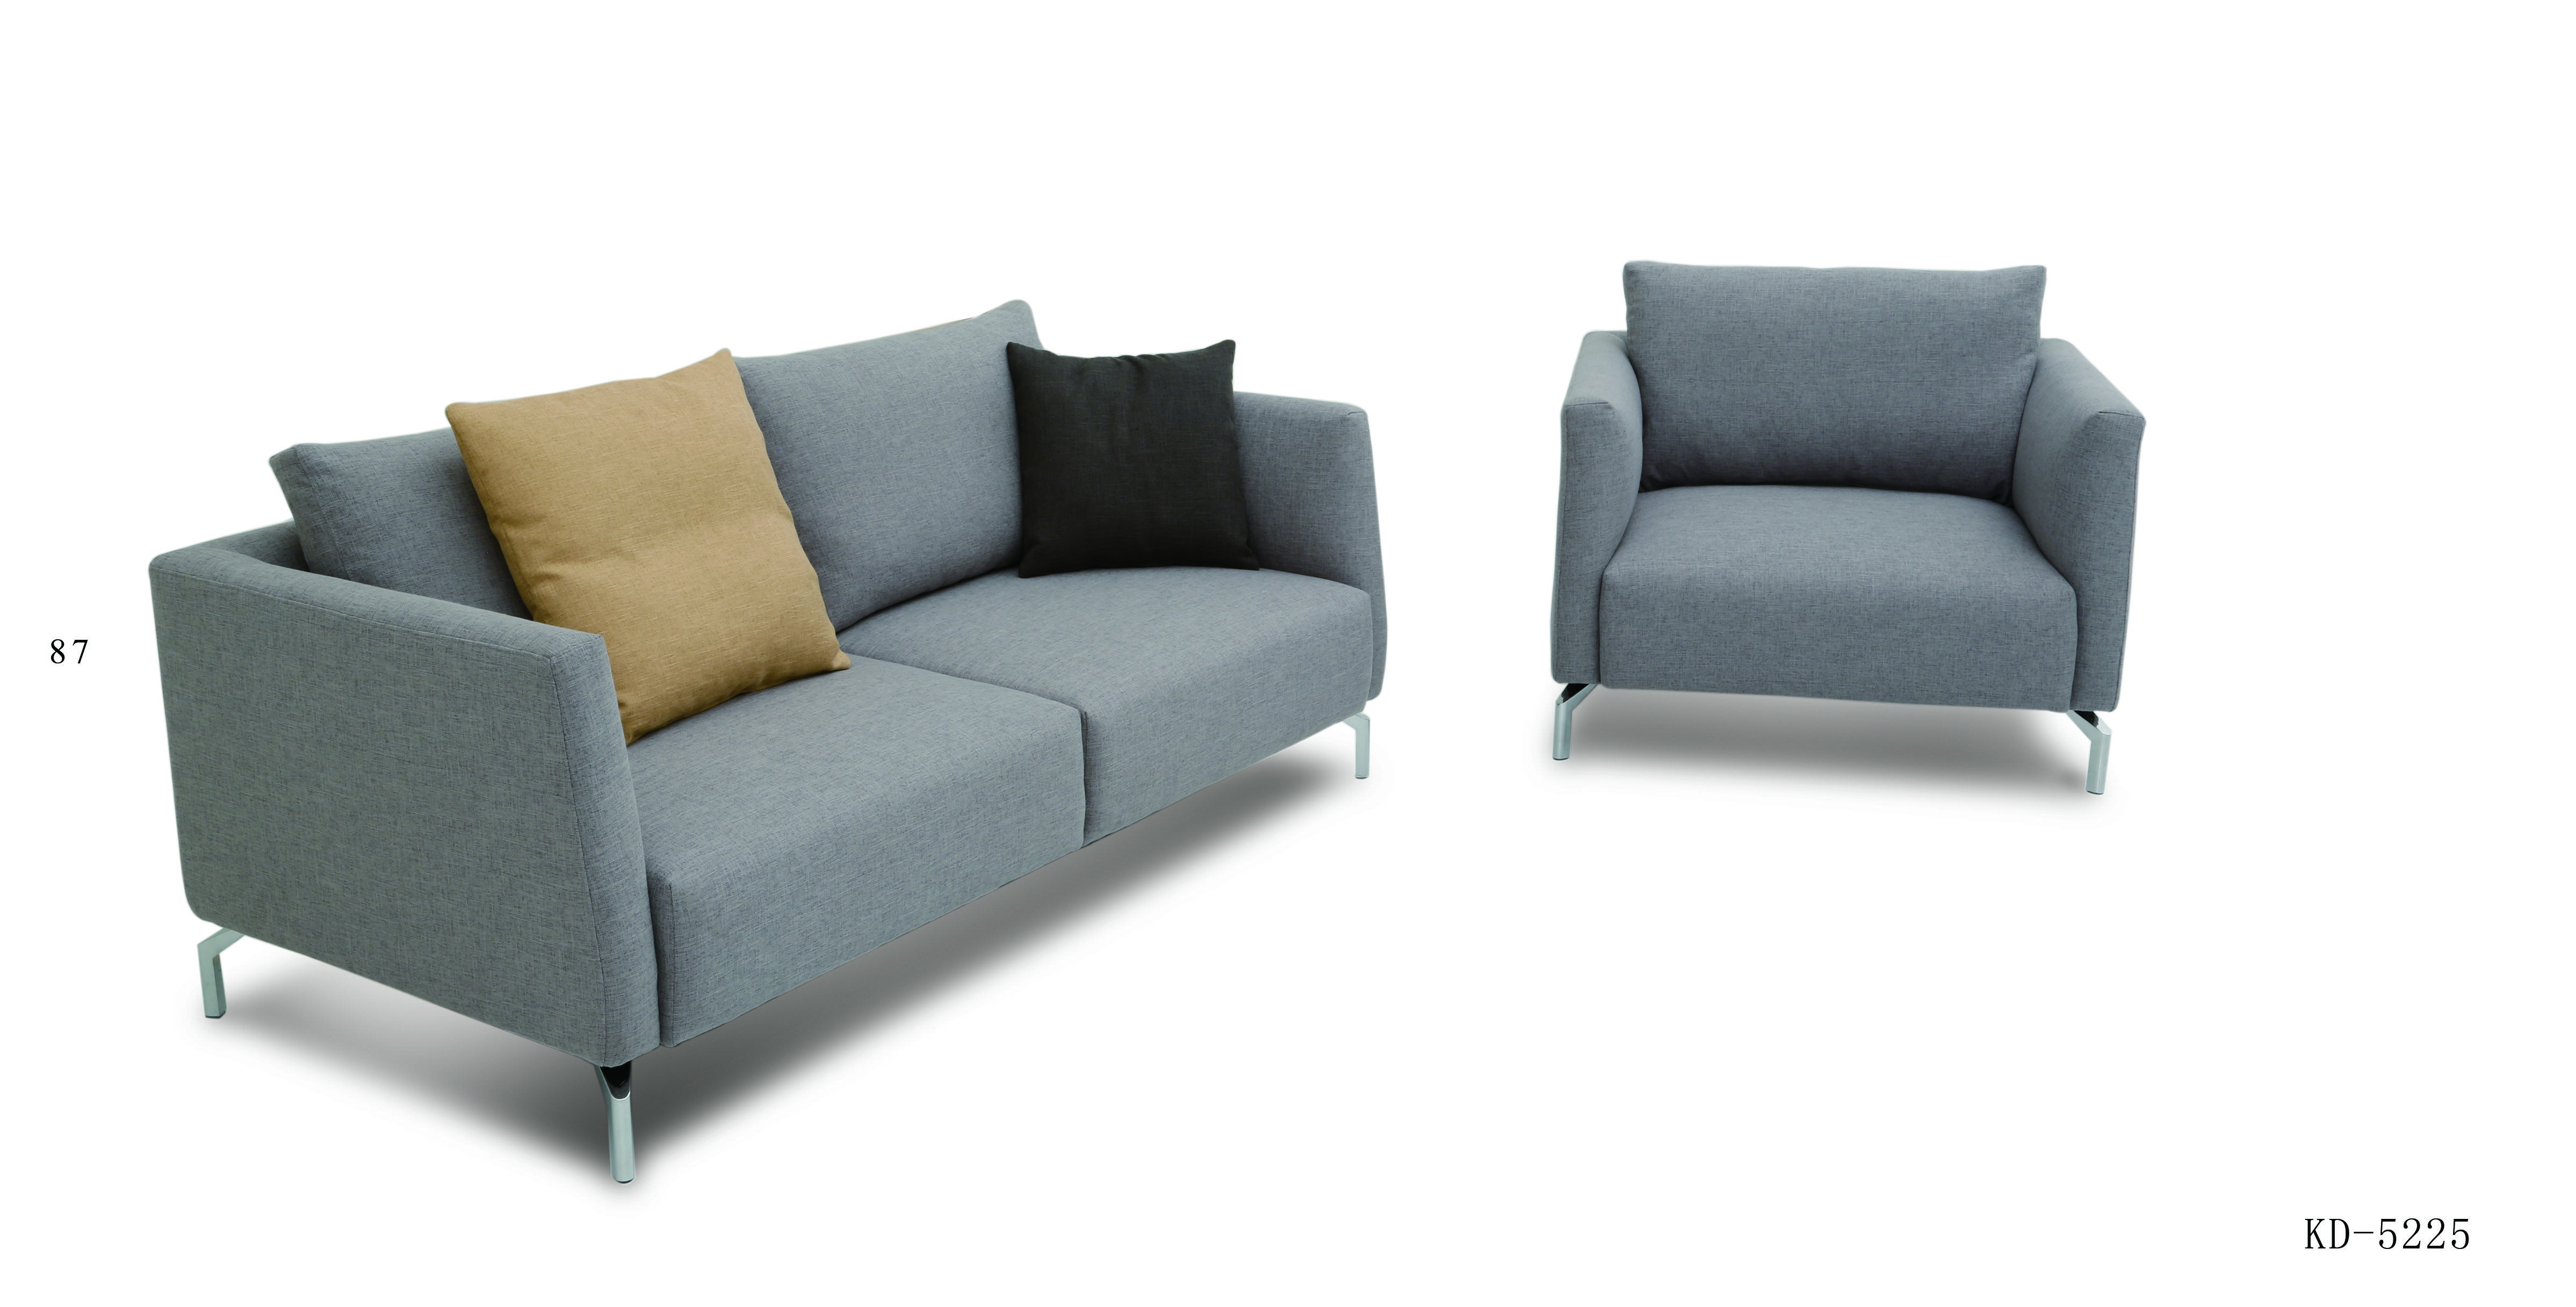 Everyone Wants A Comfortable Couch Cocheen Has Many Couch Sofa 3d